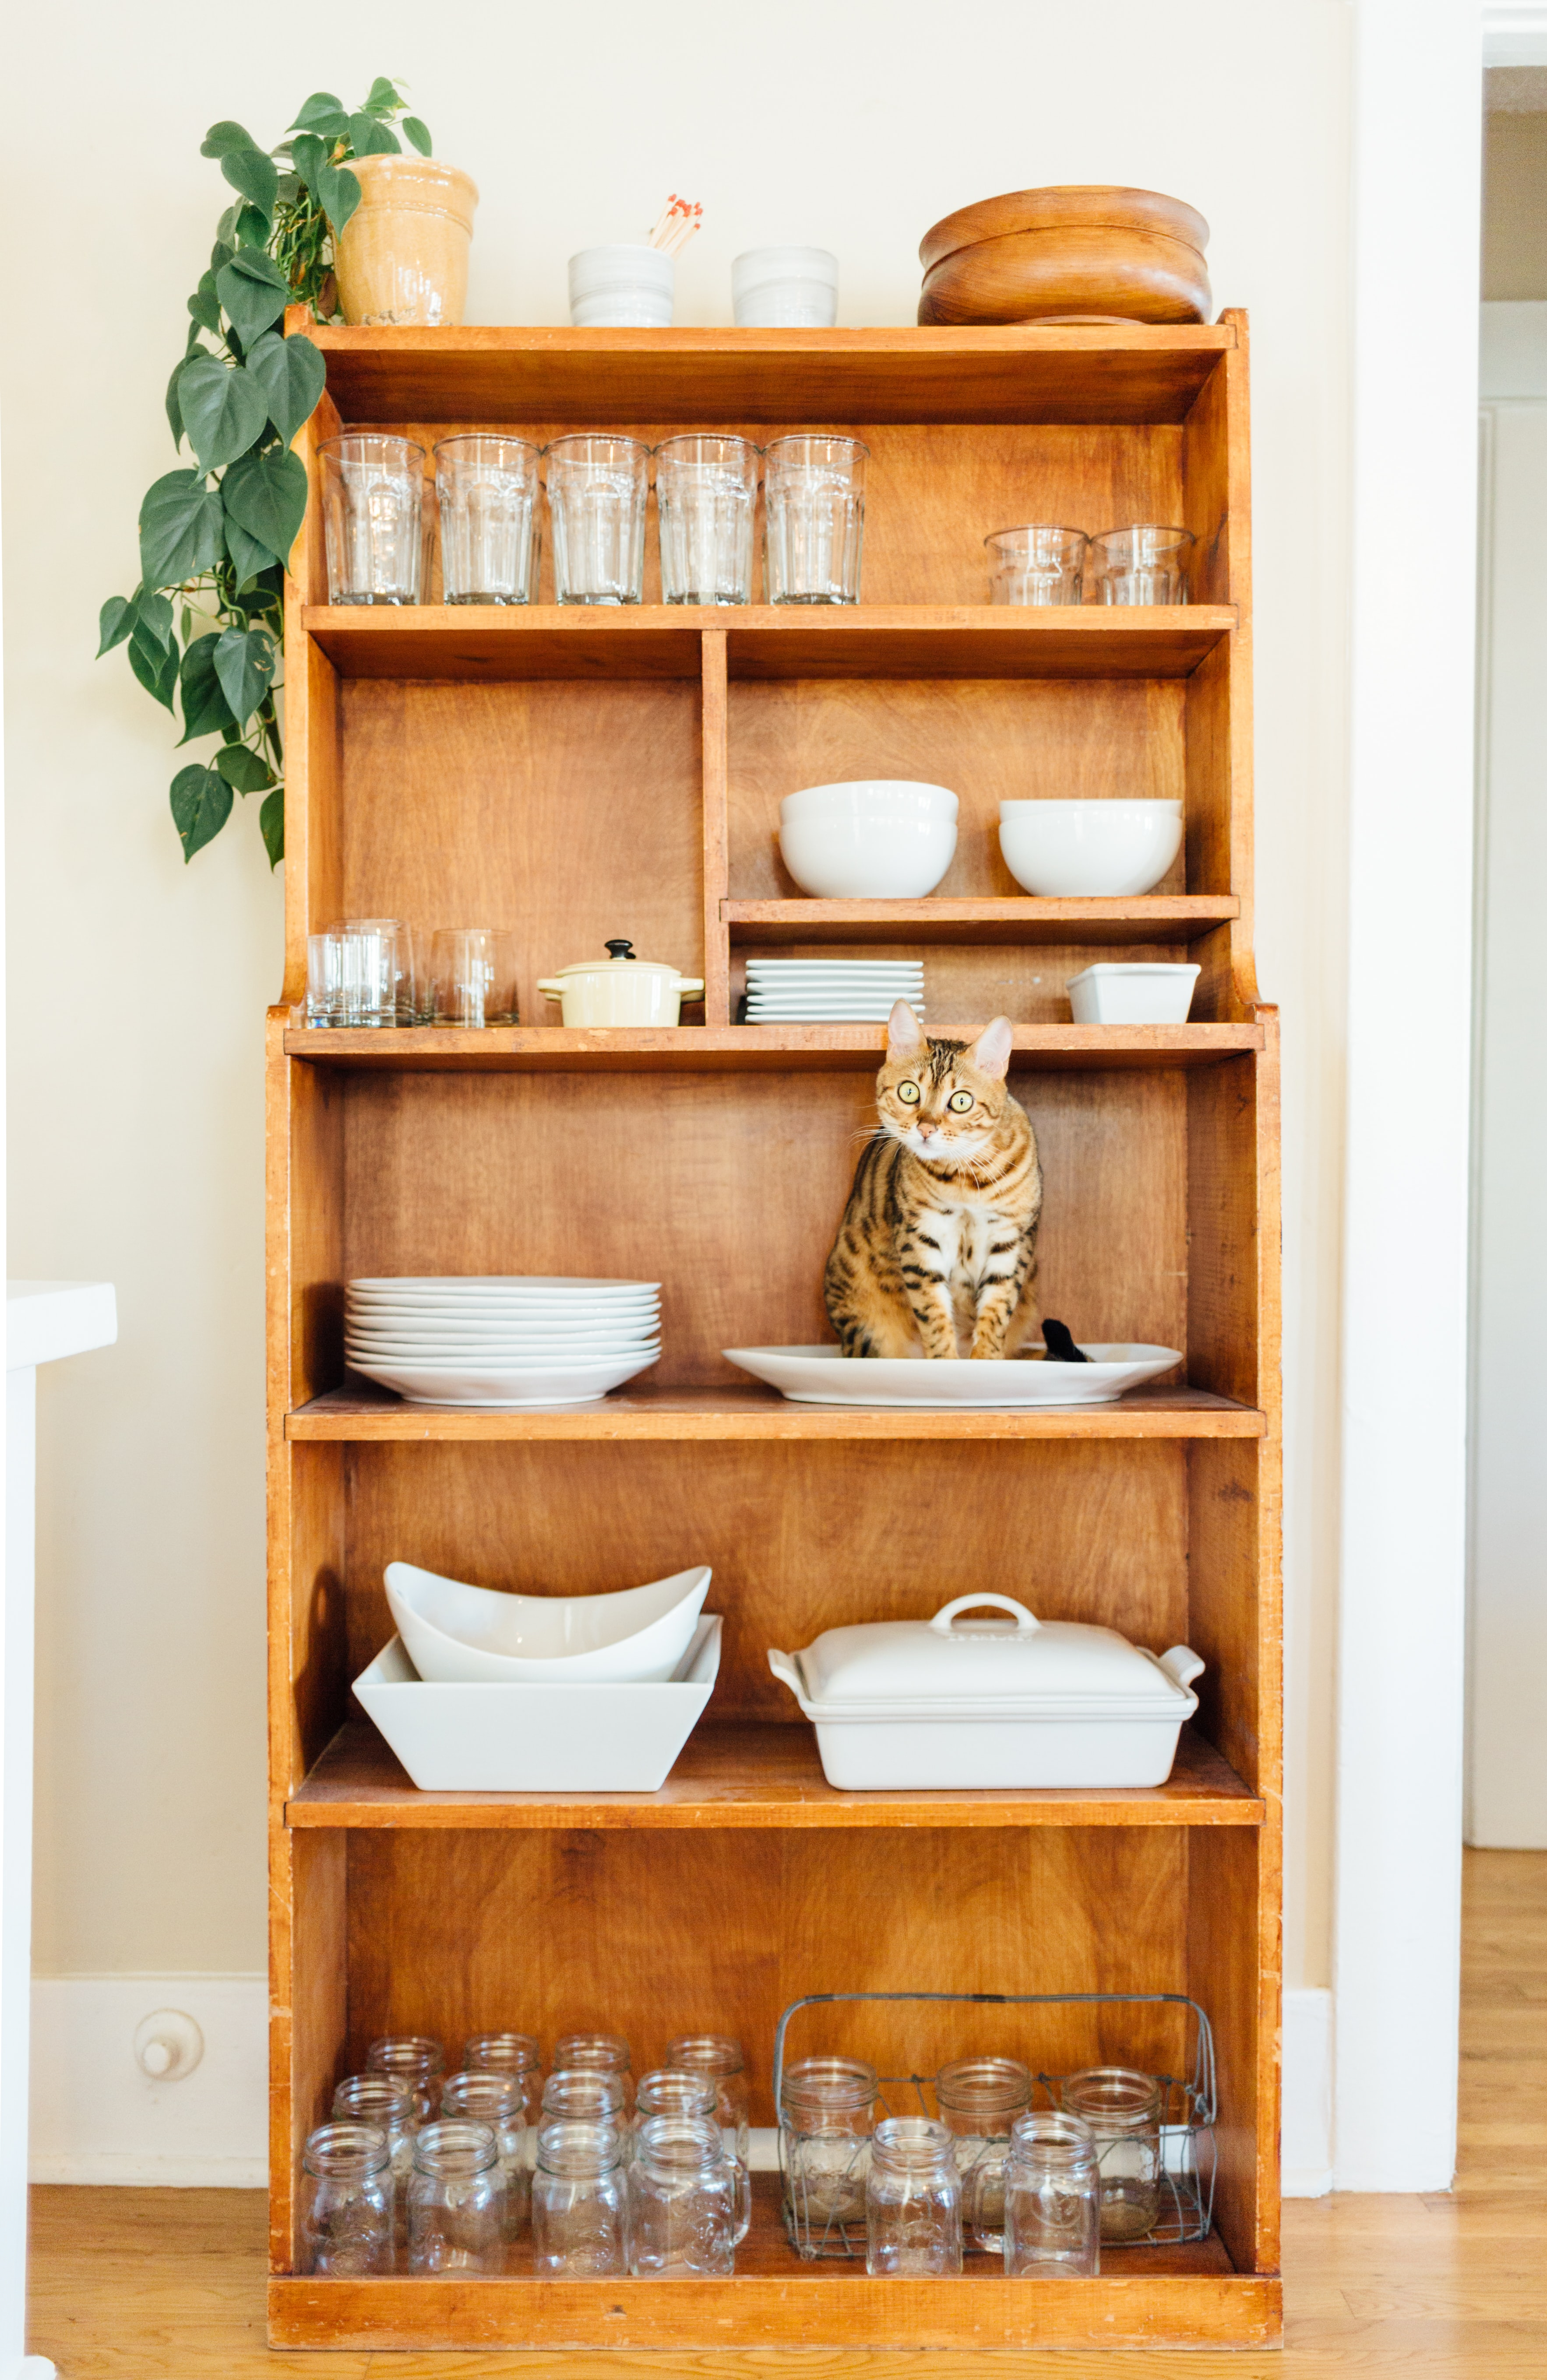 gray tabby cat on brown wooden shelves with cutleries inside house